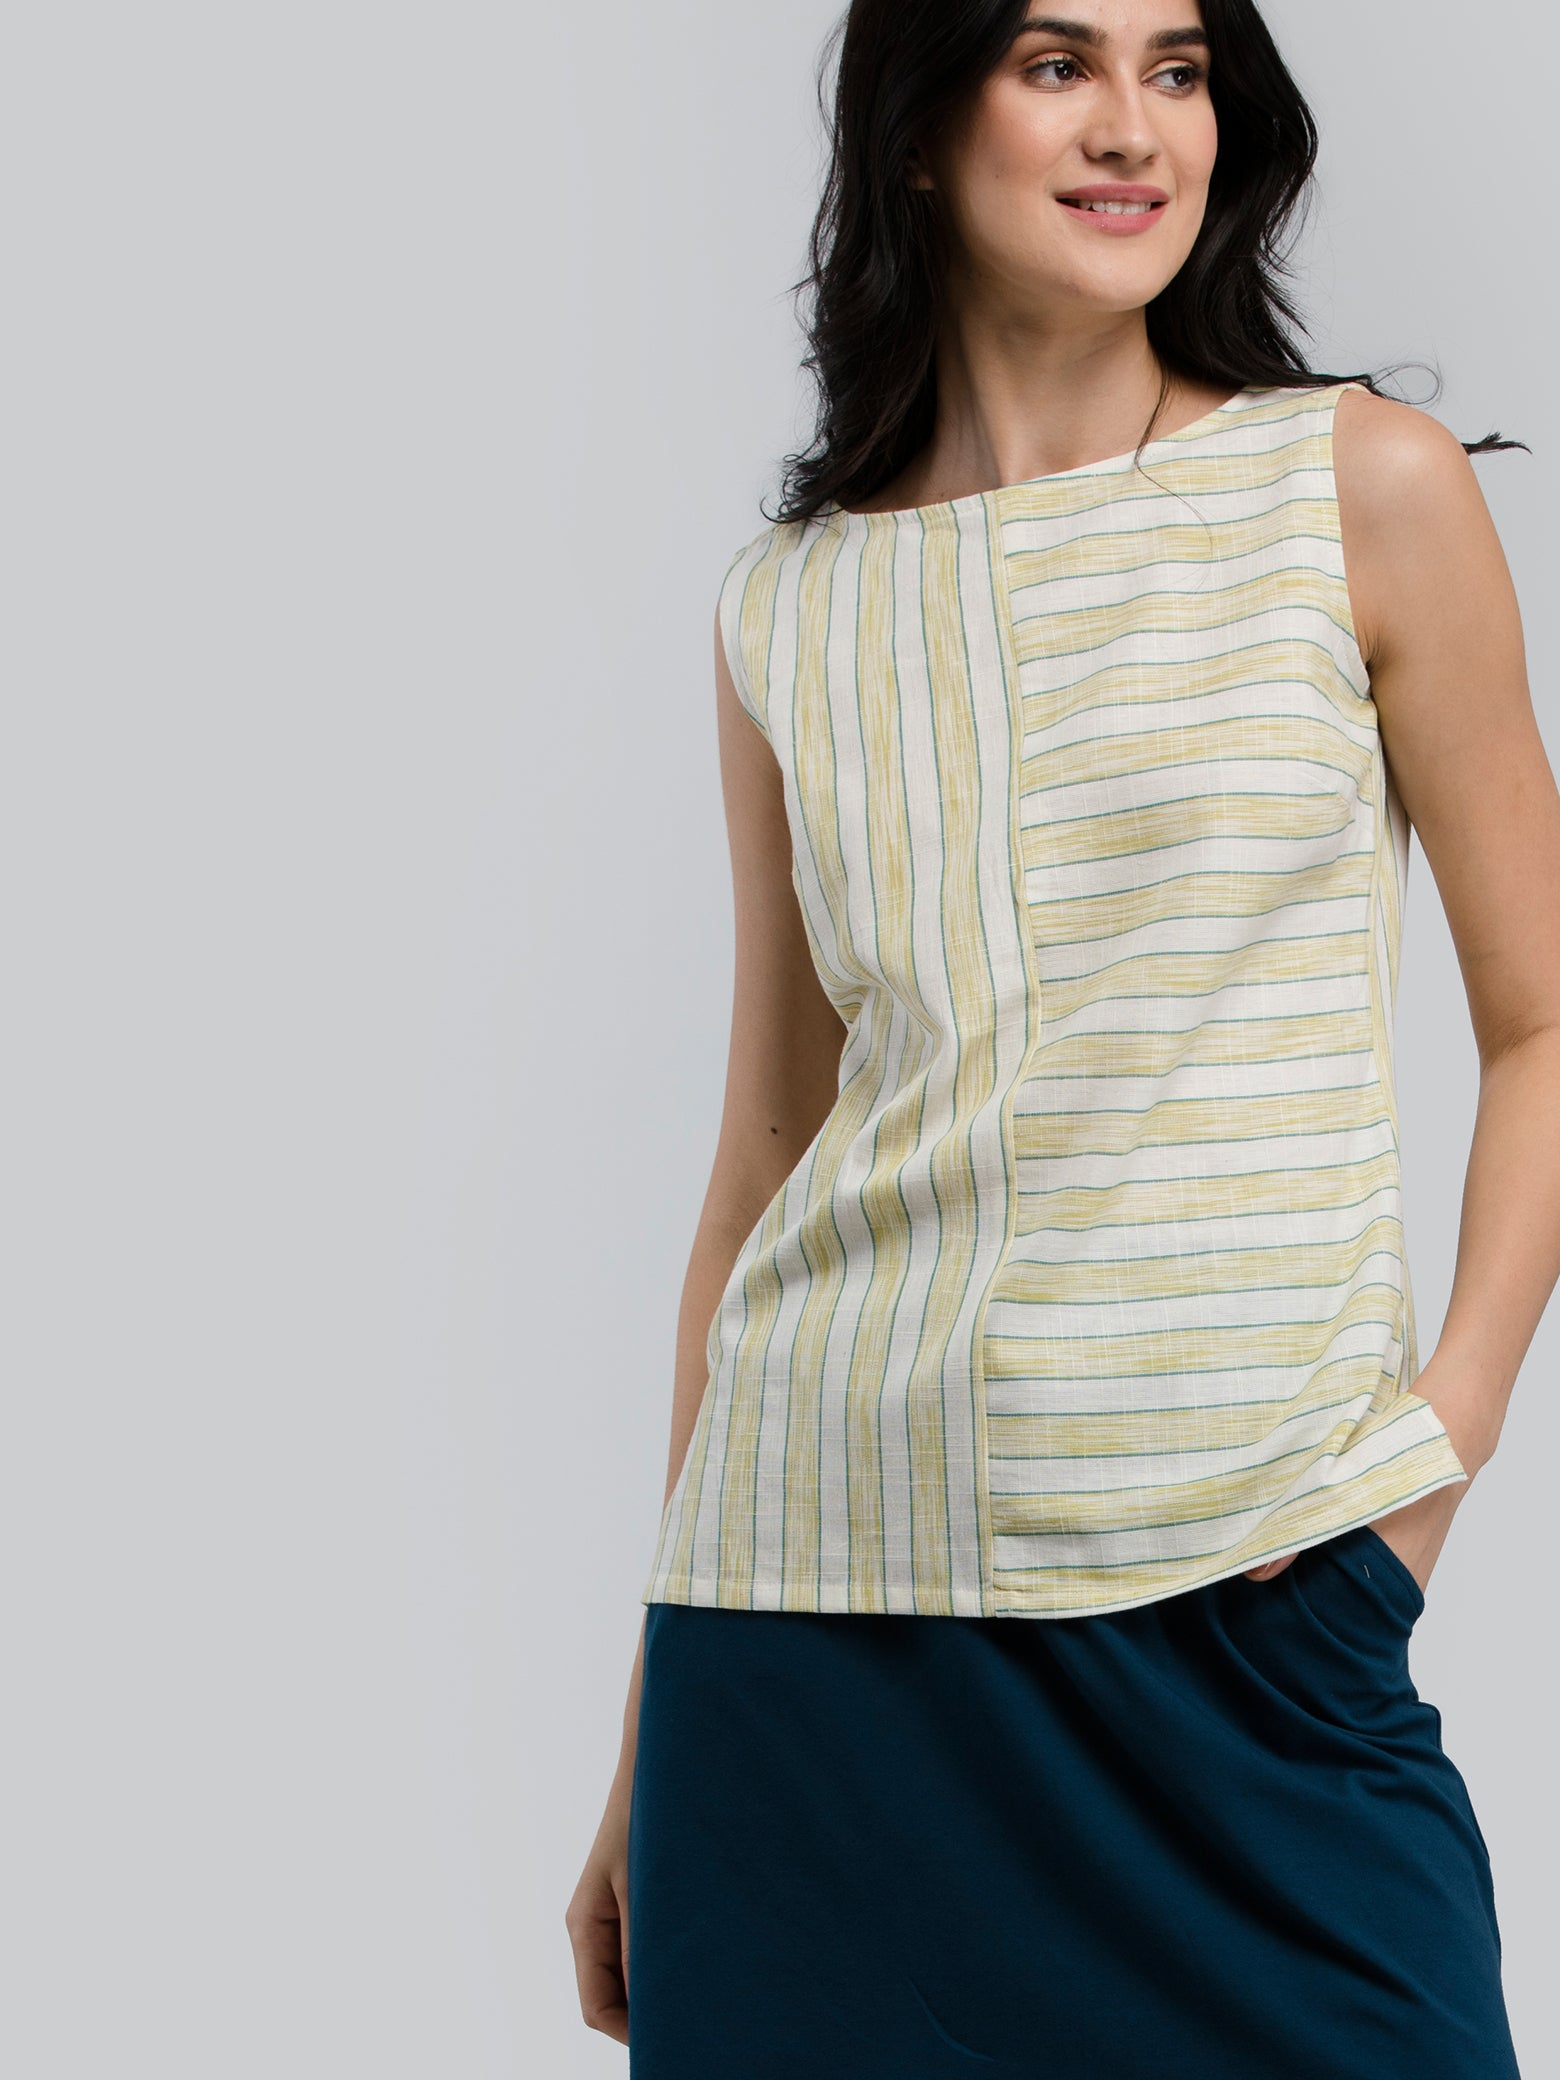 Cotton Striped Top - Lime